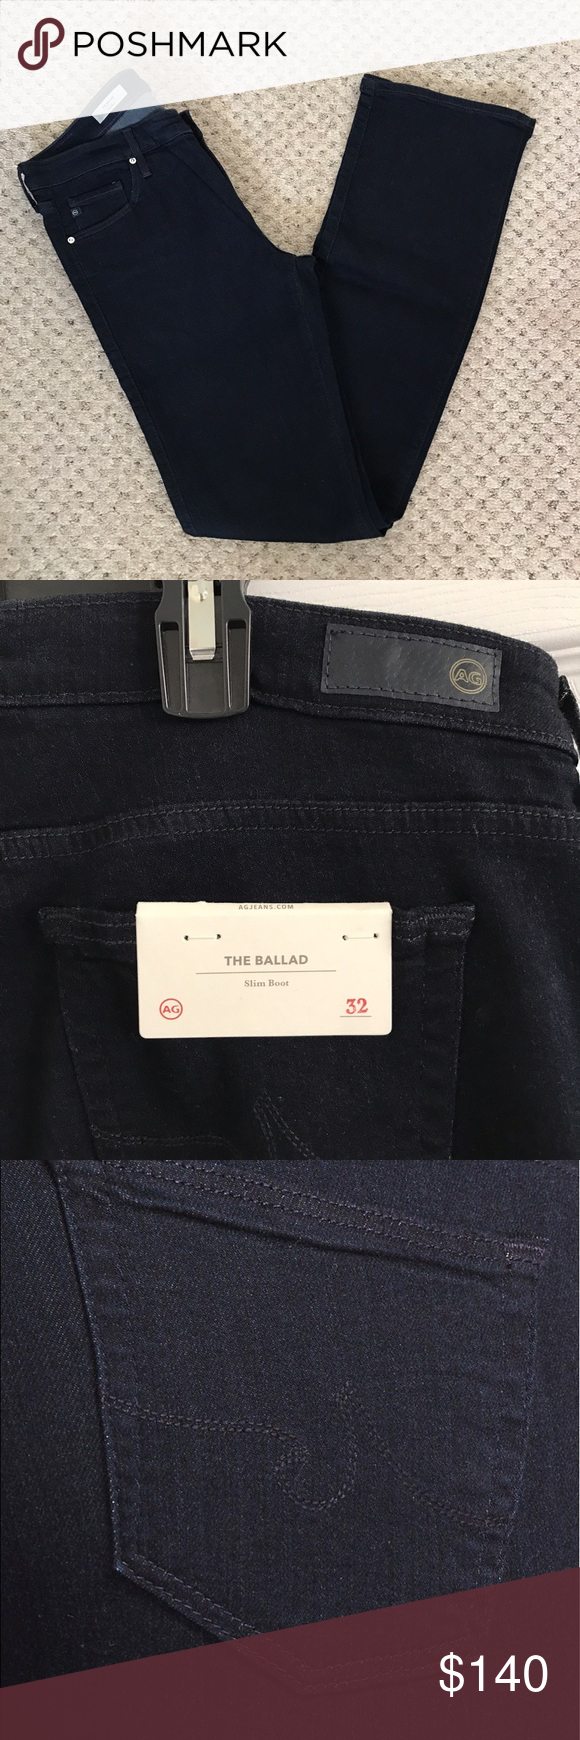 "AG 'The Ballad' Slim Bootcut Denim Jeans New with tags AG Adriano Goldschmied 'Ballad' slim bootcut denim jeans size 32R. The price tag was removed however the tag with size and style (see pic 2) is still attached.   Measurements:  Waist 32"" Inseam 33"" Length 42.5"" Leg opening across the bottom hem 8.5""  🚫No trades or modeling 📦Same/next day shipping AG Adriano Goldschmied Jeans Boot Cut"